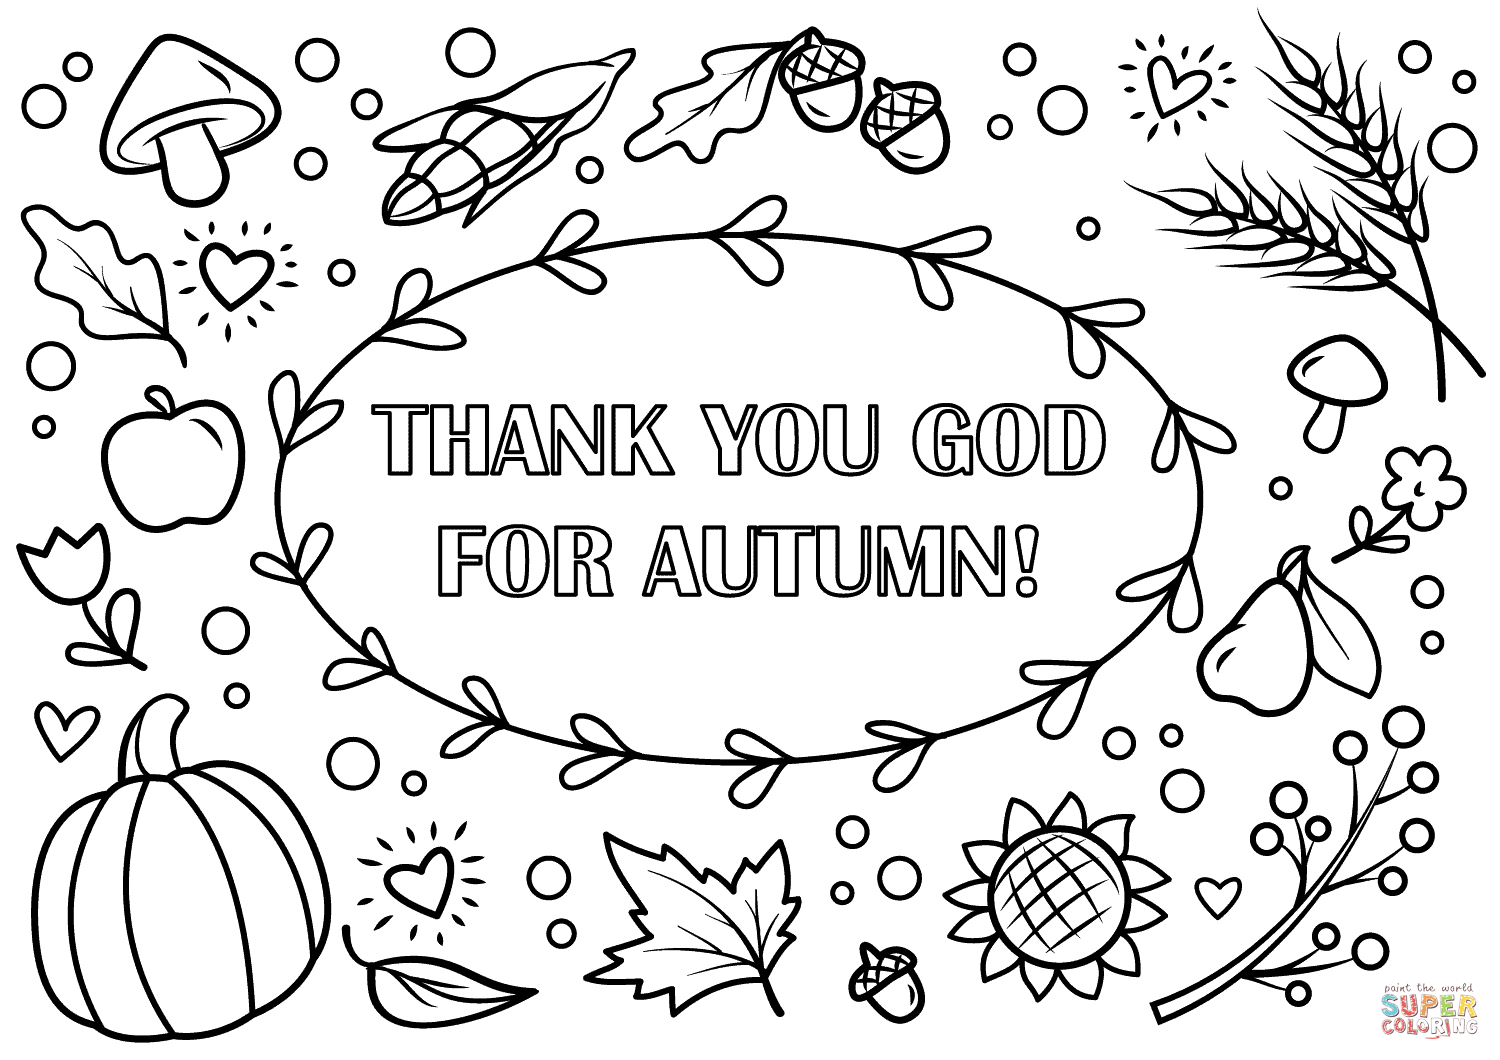 Image Result For Thank You God Free Colouring Worksheets Fall Leaves Coloring Pages Fall Coloring Sheets Fall Coloring Pages